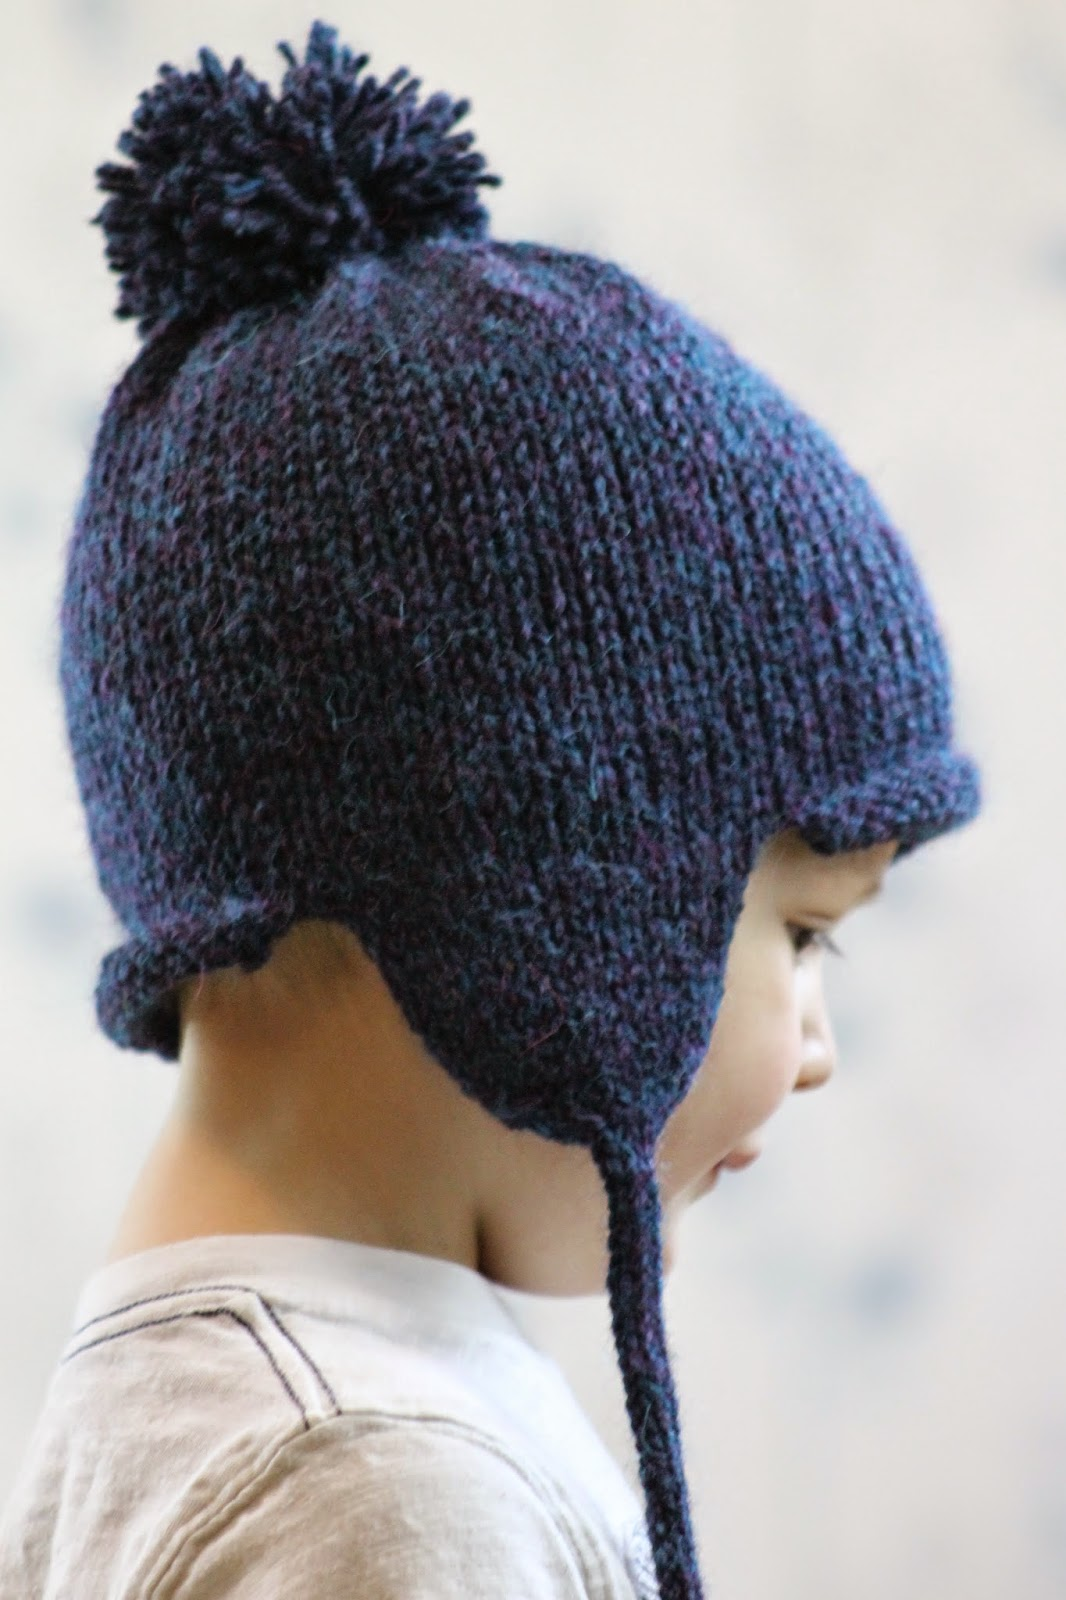 Knitting Pattern Baby Hat With Ear Flaps : Balls to the Walls Knits: All in the Family Earflap Hat